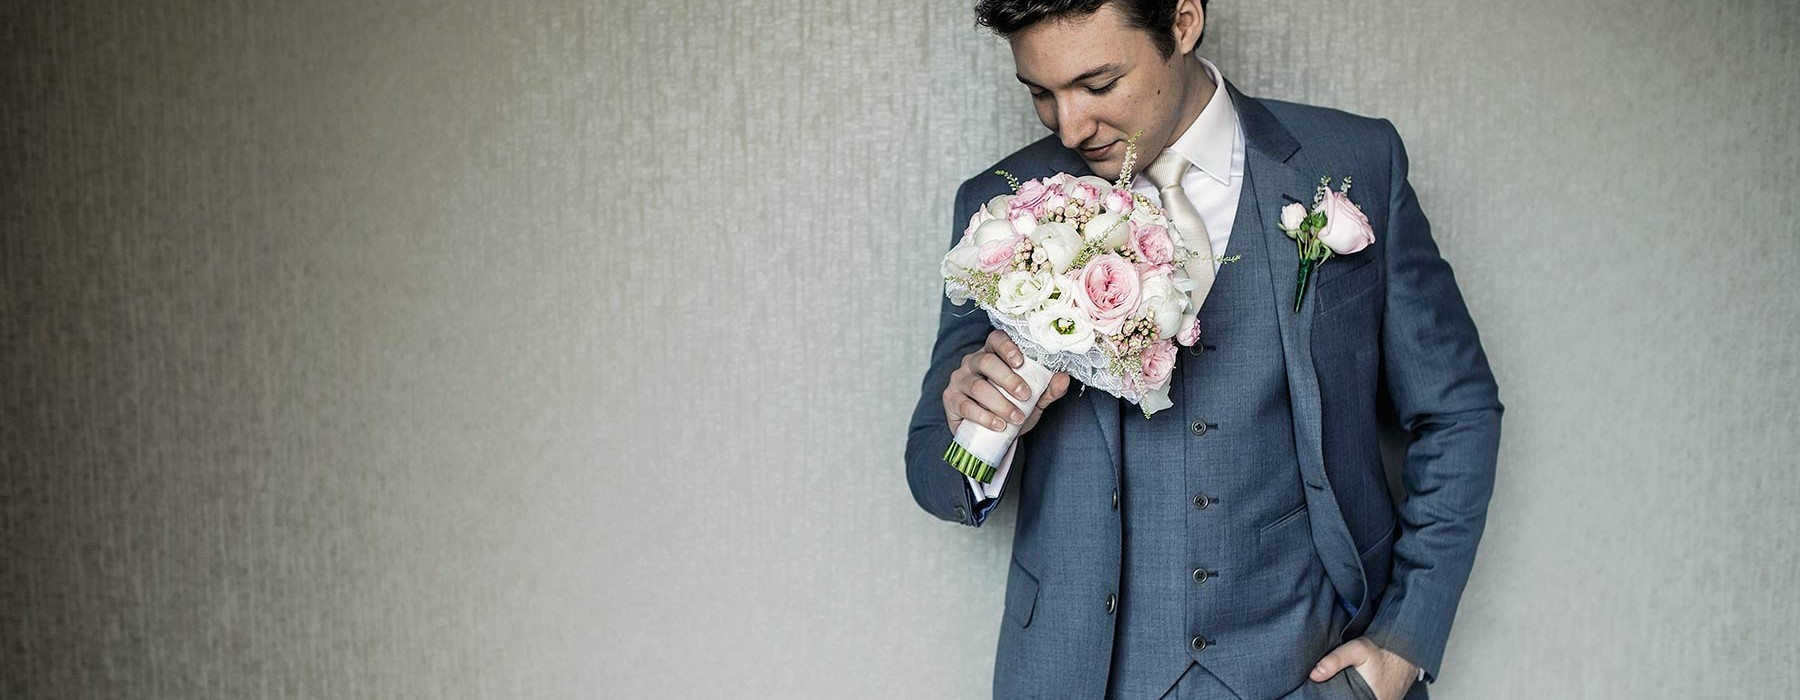 When flowers aren't just for the Bride!